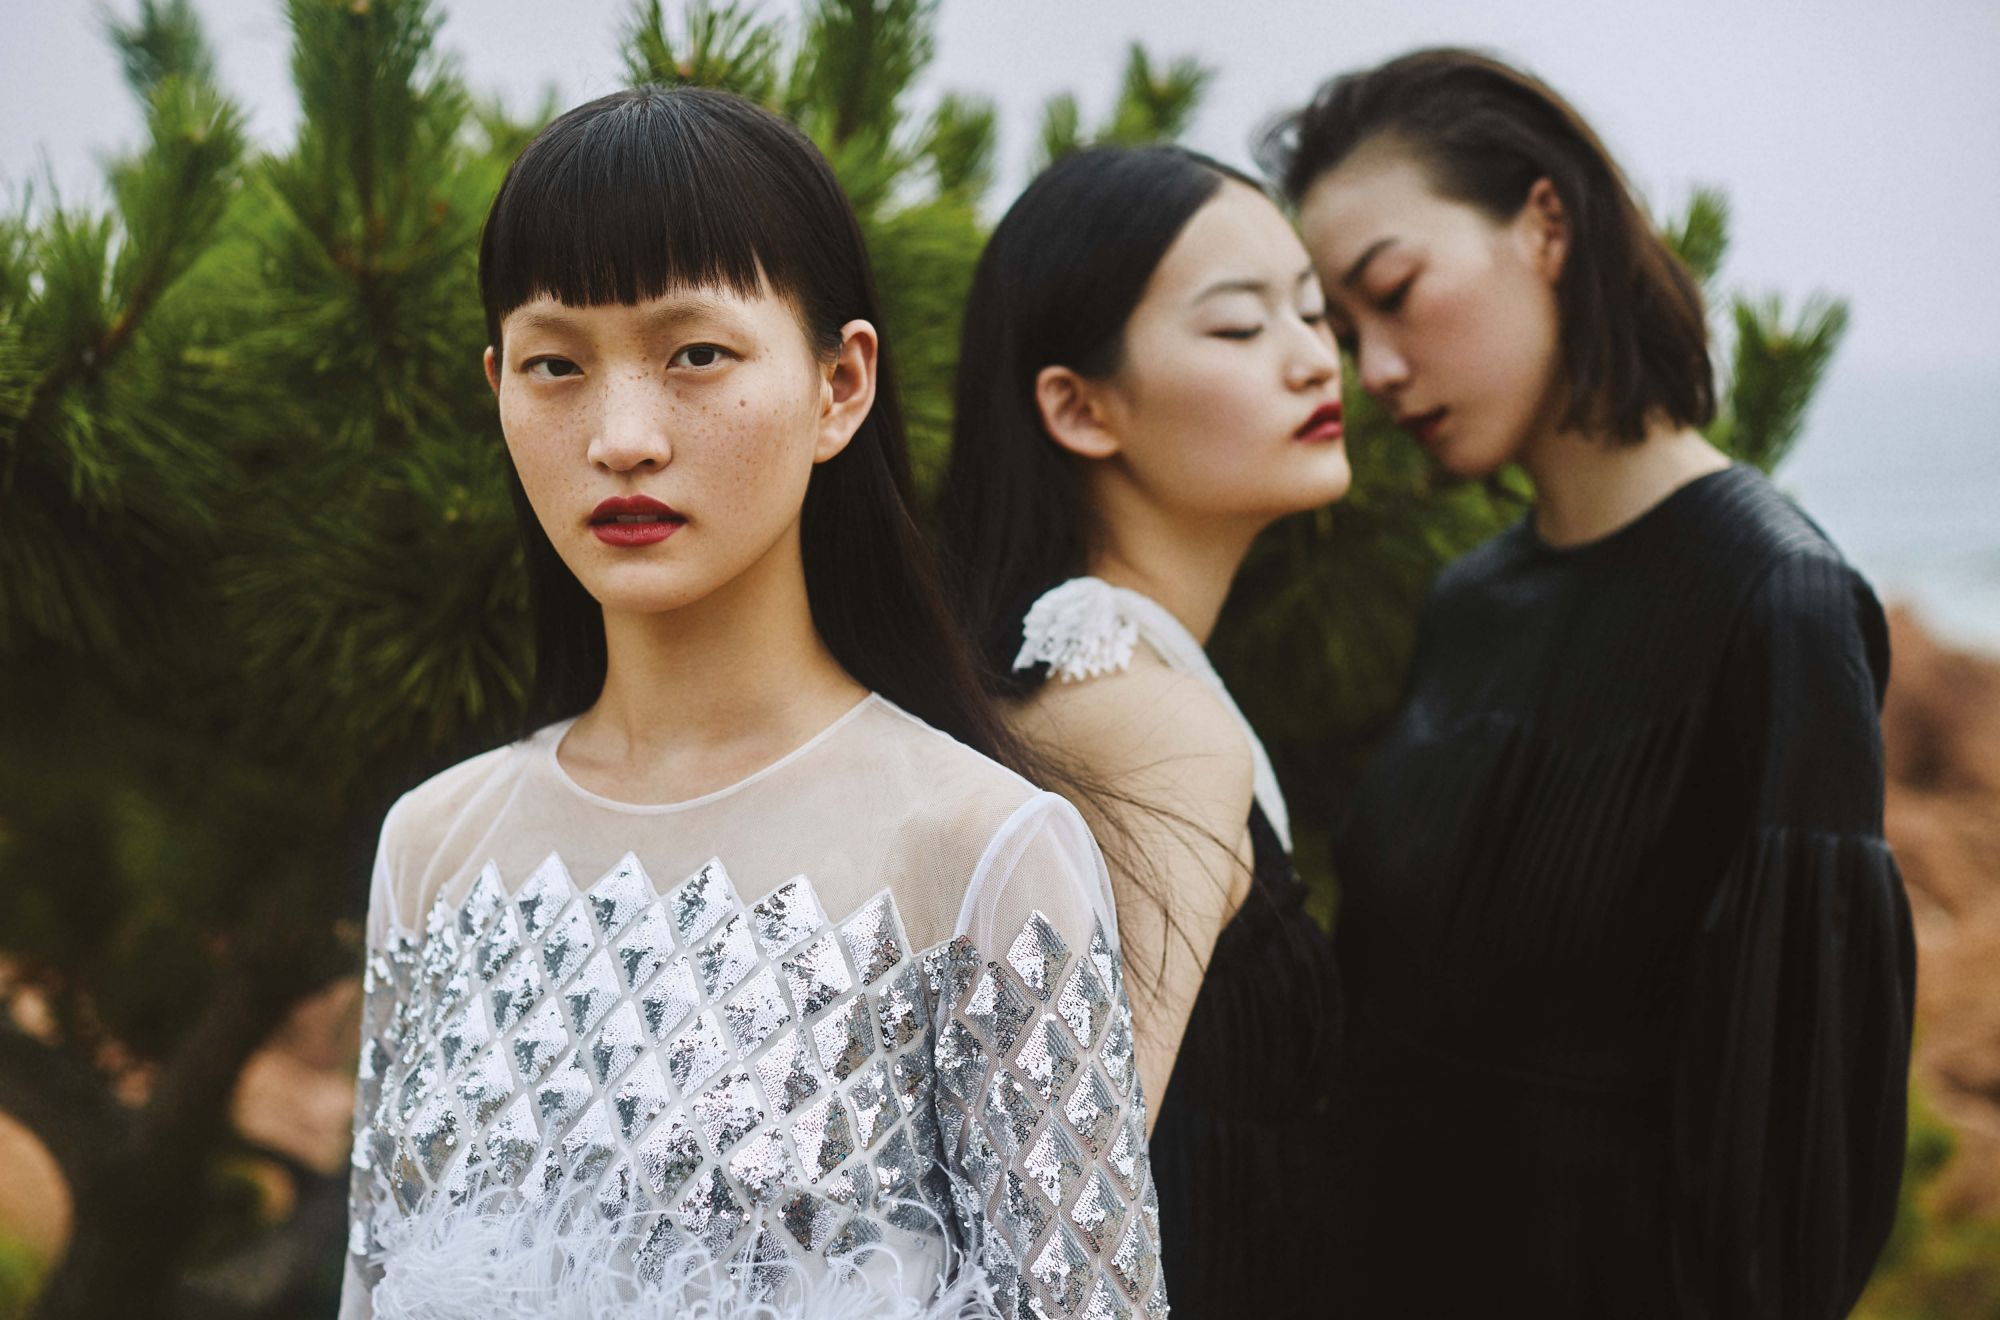 Rising In The East How Huishan Zhang Became One Of China S Top Young Fashion Designers Tatler Hong Kong